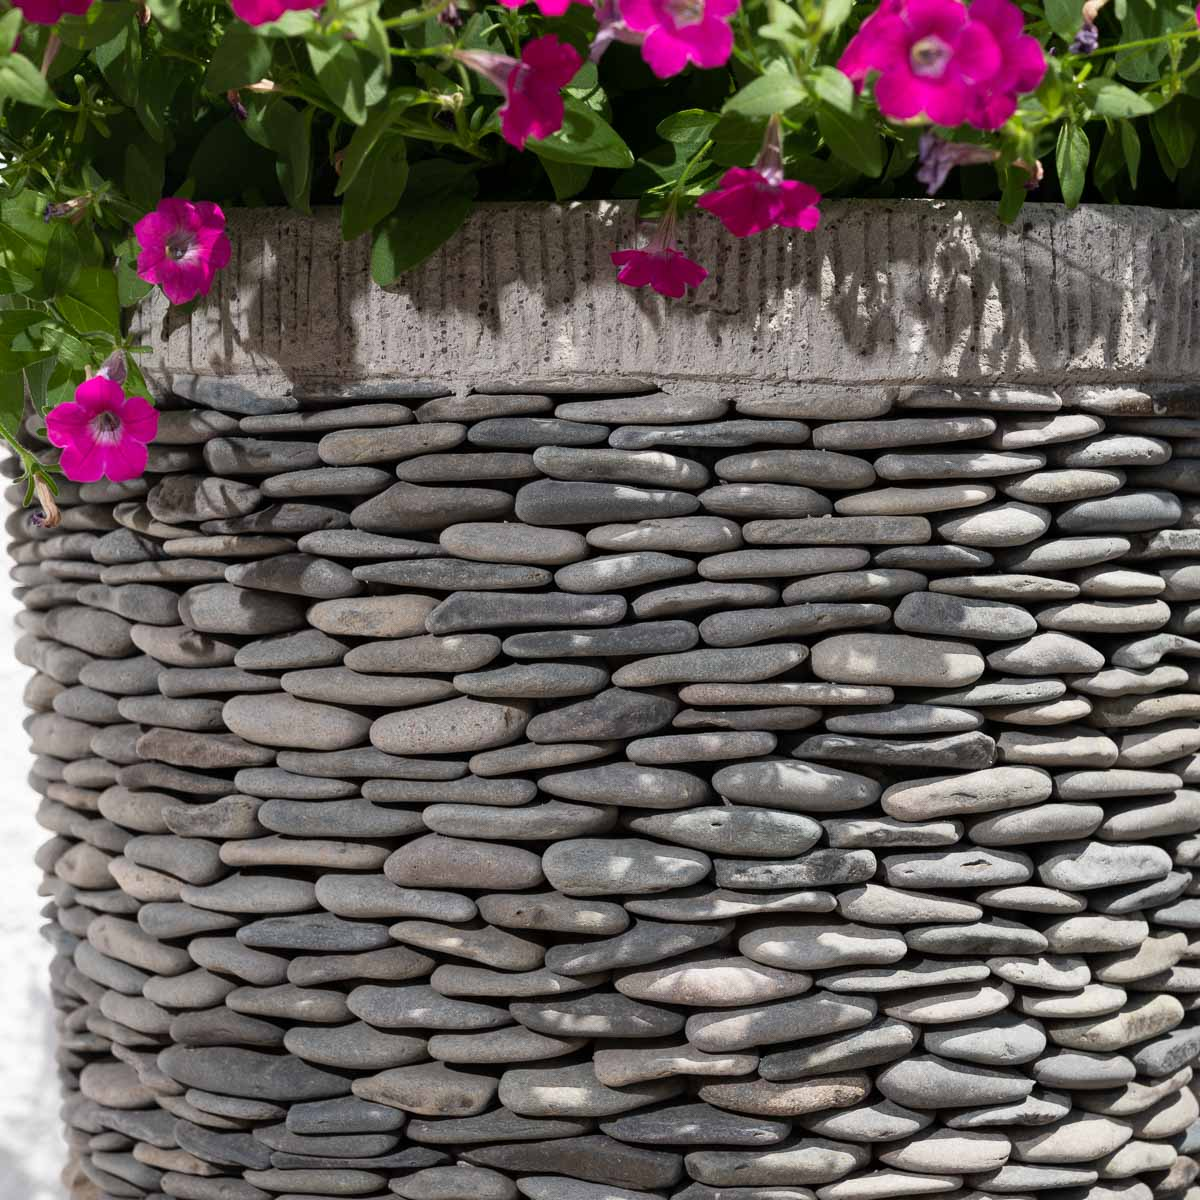 Pot de jardin en galet de rivi re conique naturel h 80 cm - Galet decoratif exterieur ...